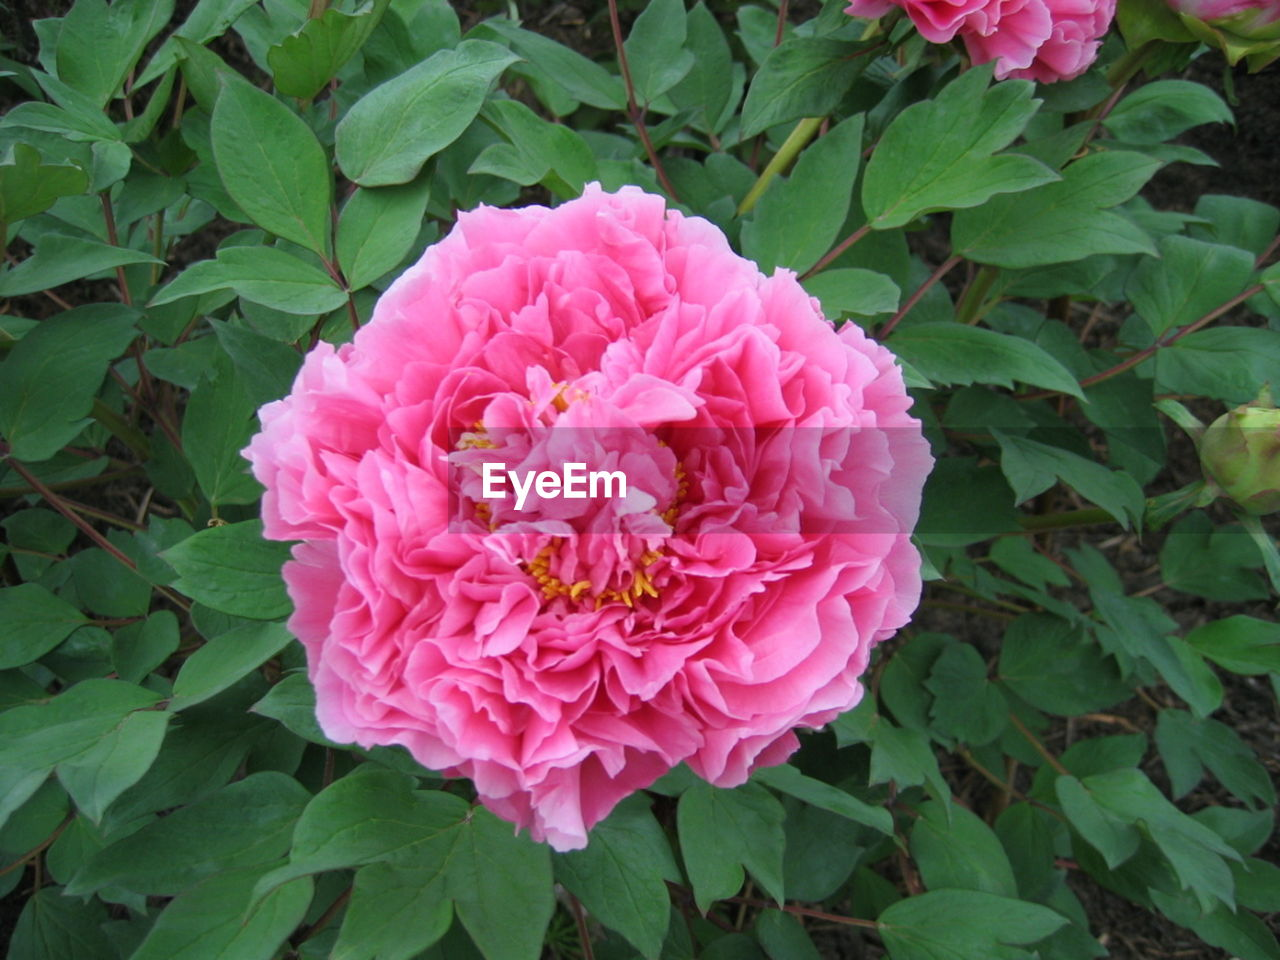 flower, nature, leaf, beauty in nature, plant, growth, pink color, petal, no people, outdoors, green color, fragility, flower head, peony, close-up, day, blooming, freshness